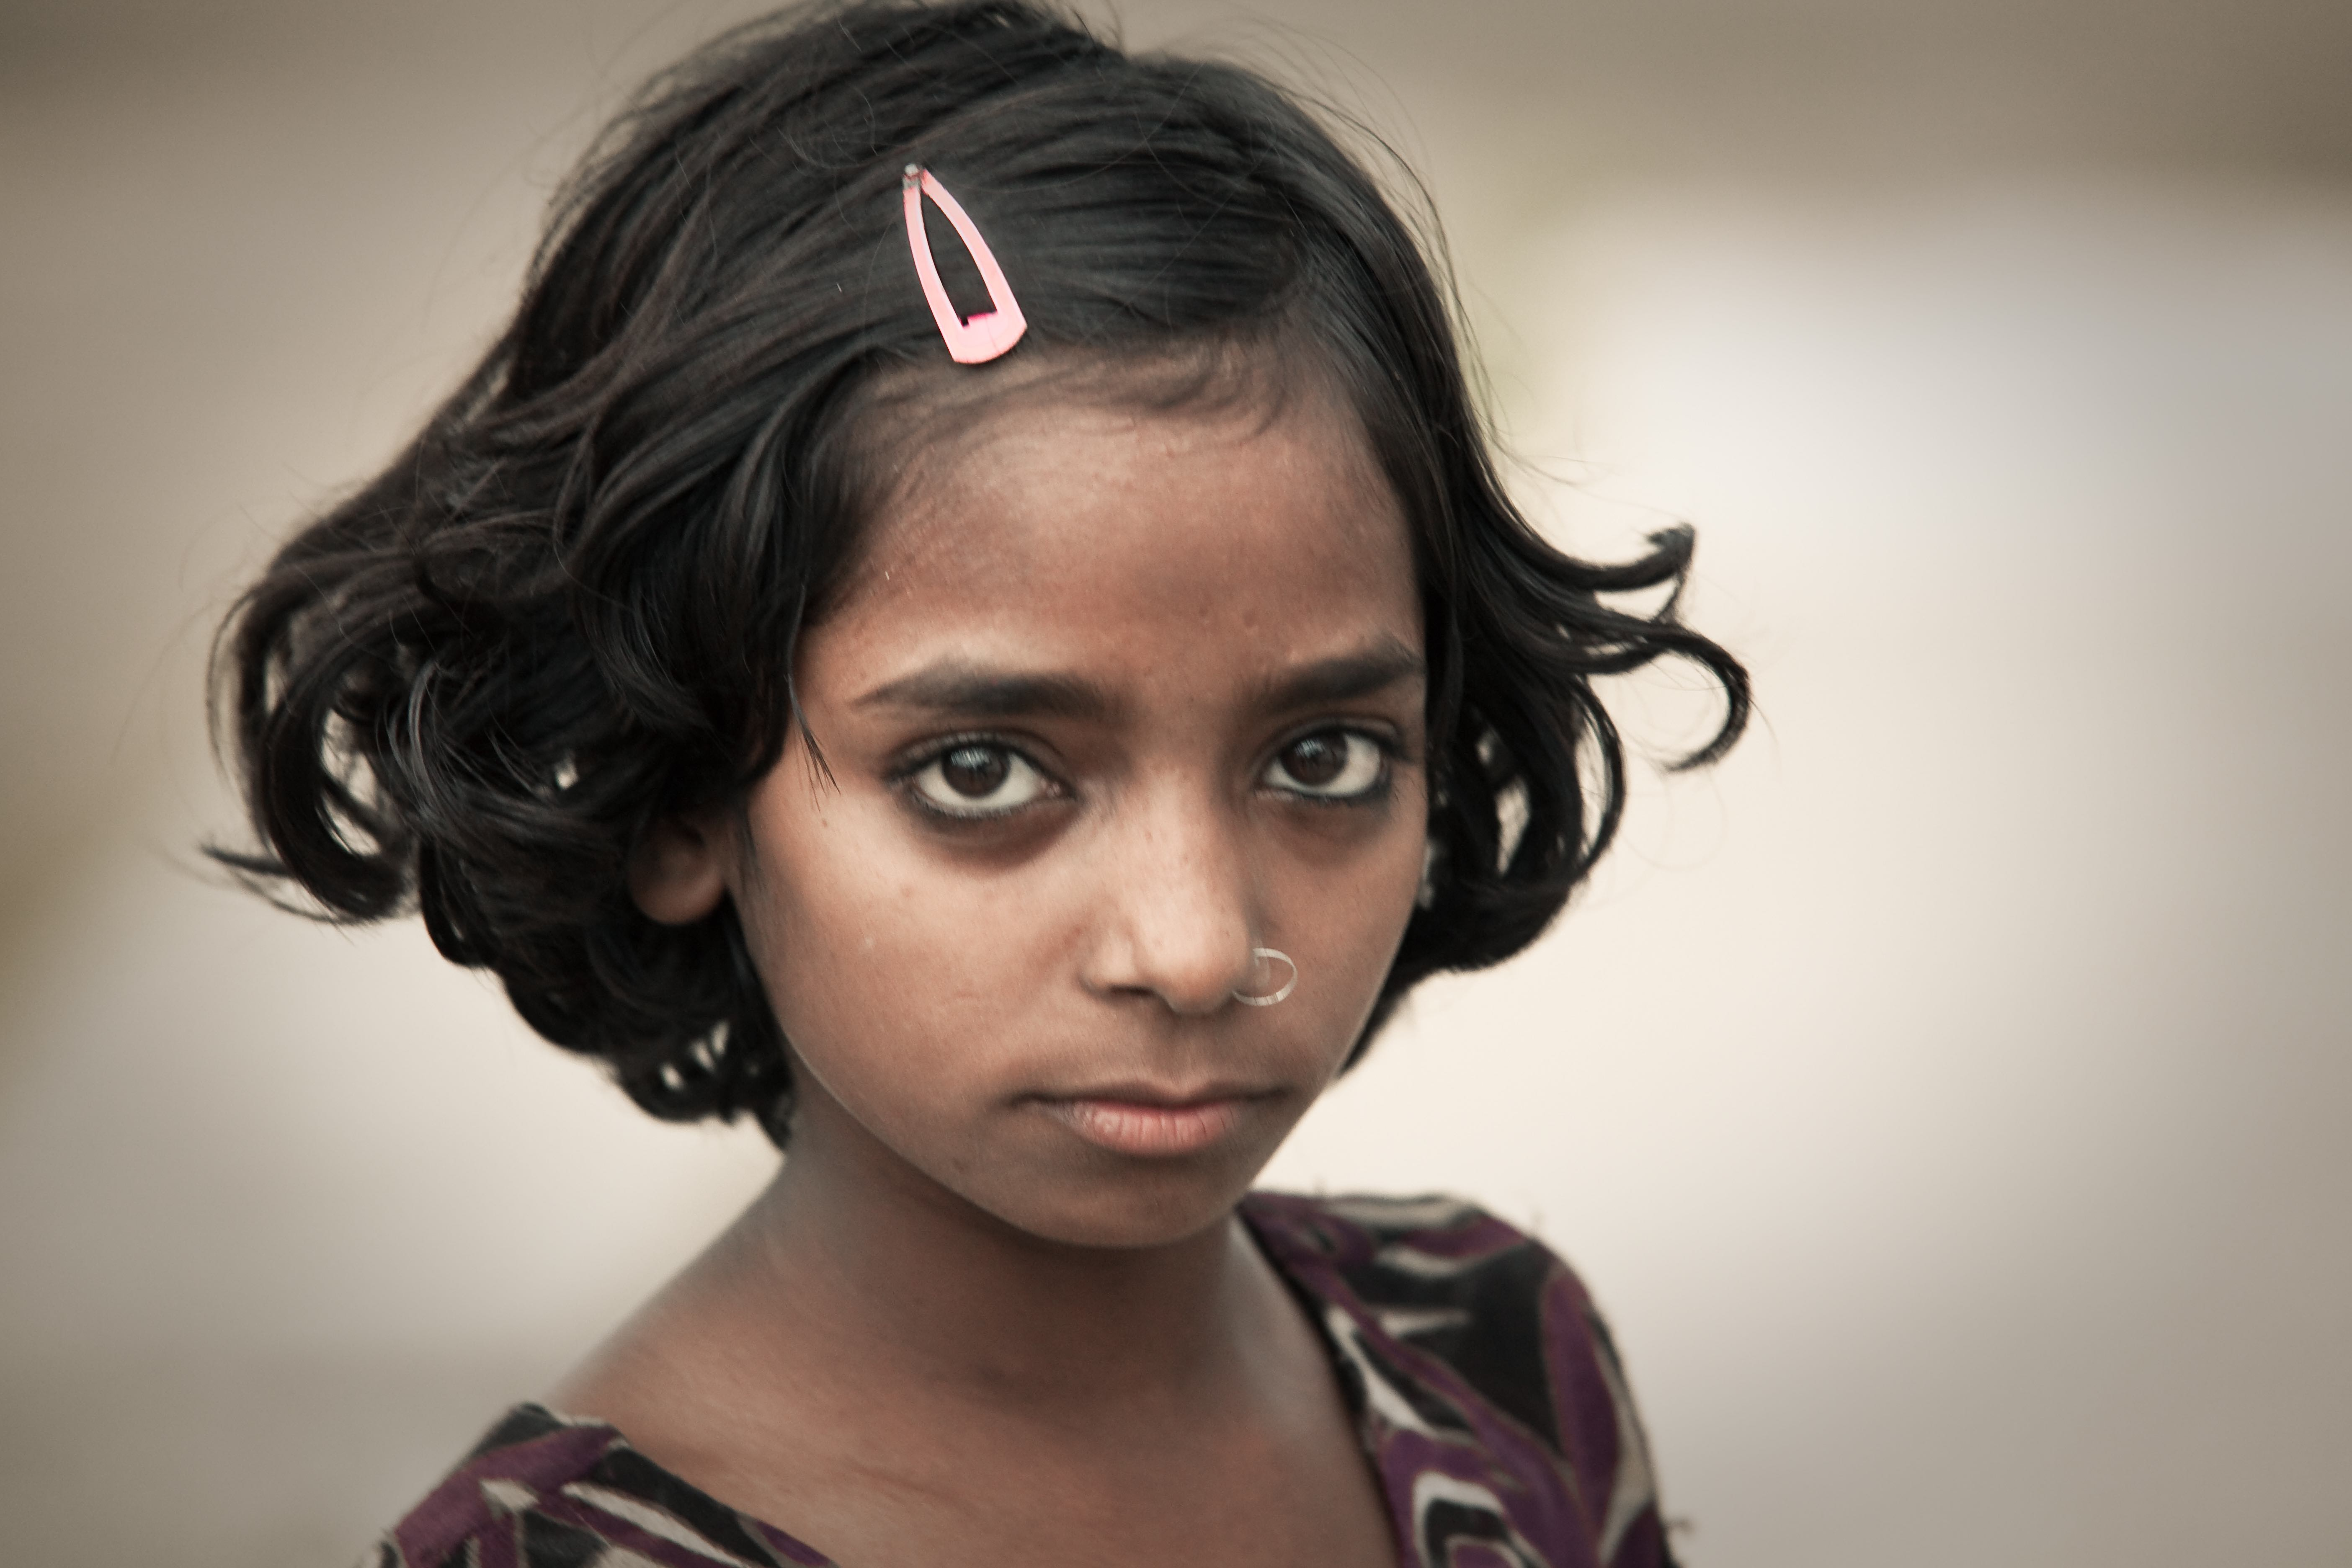 Over Two Lakh Young Girls Die Every Year in India Because of Their Gender